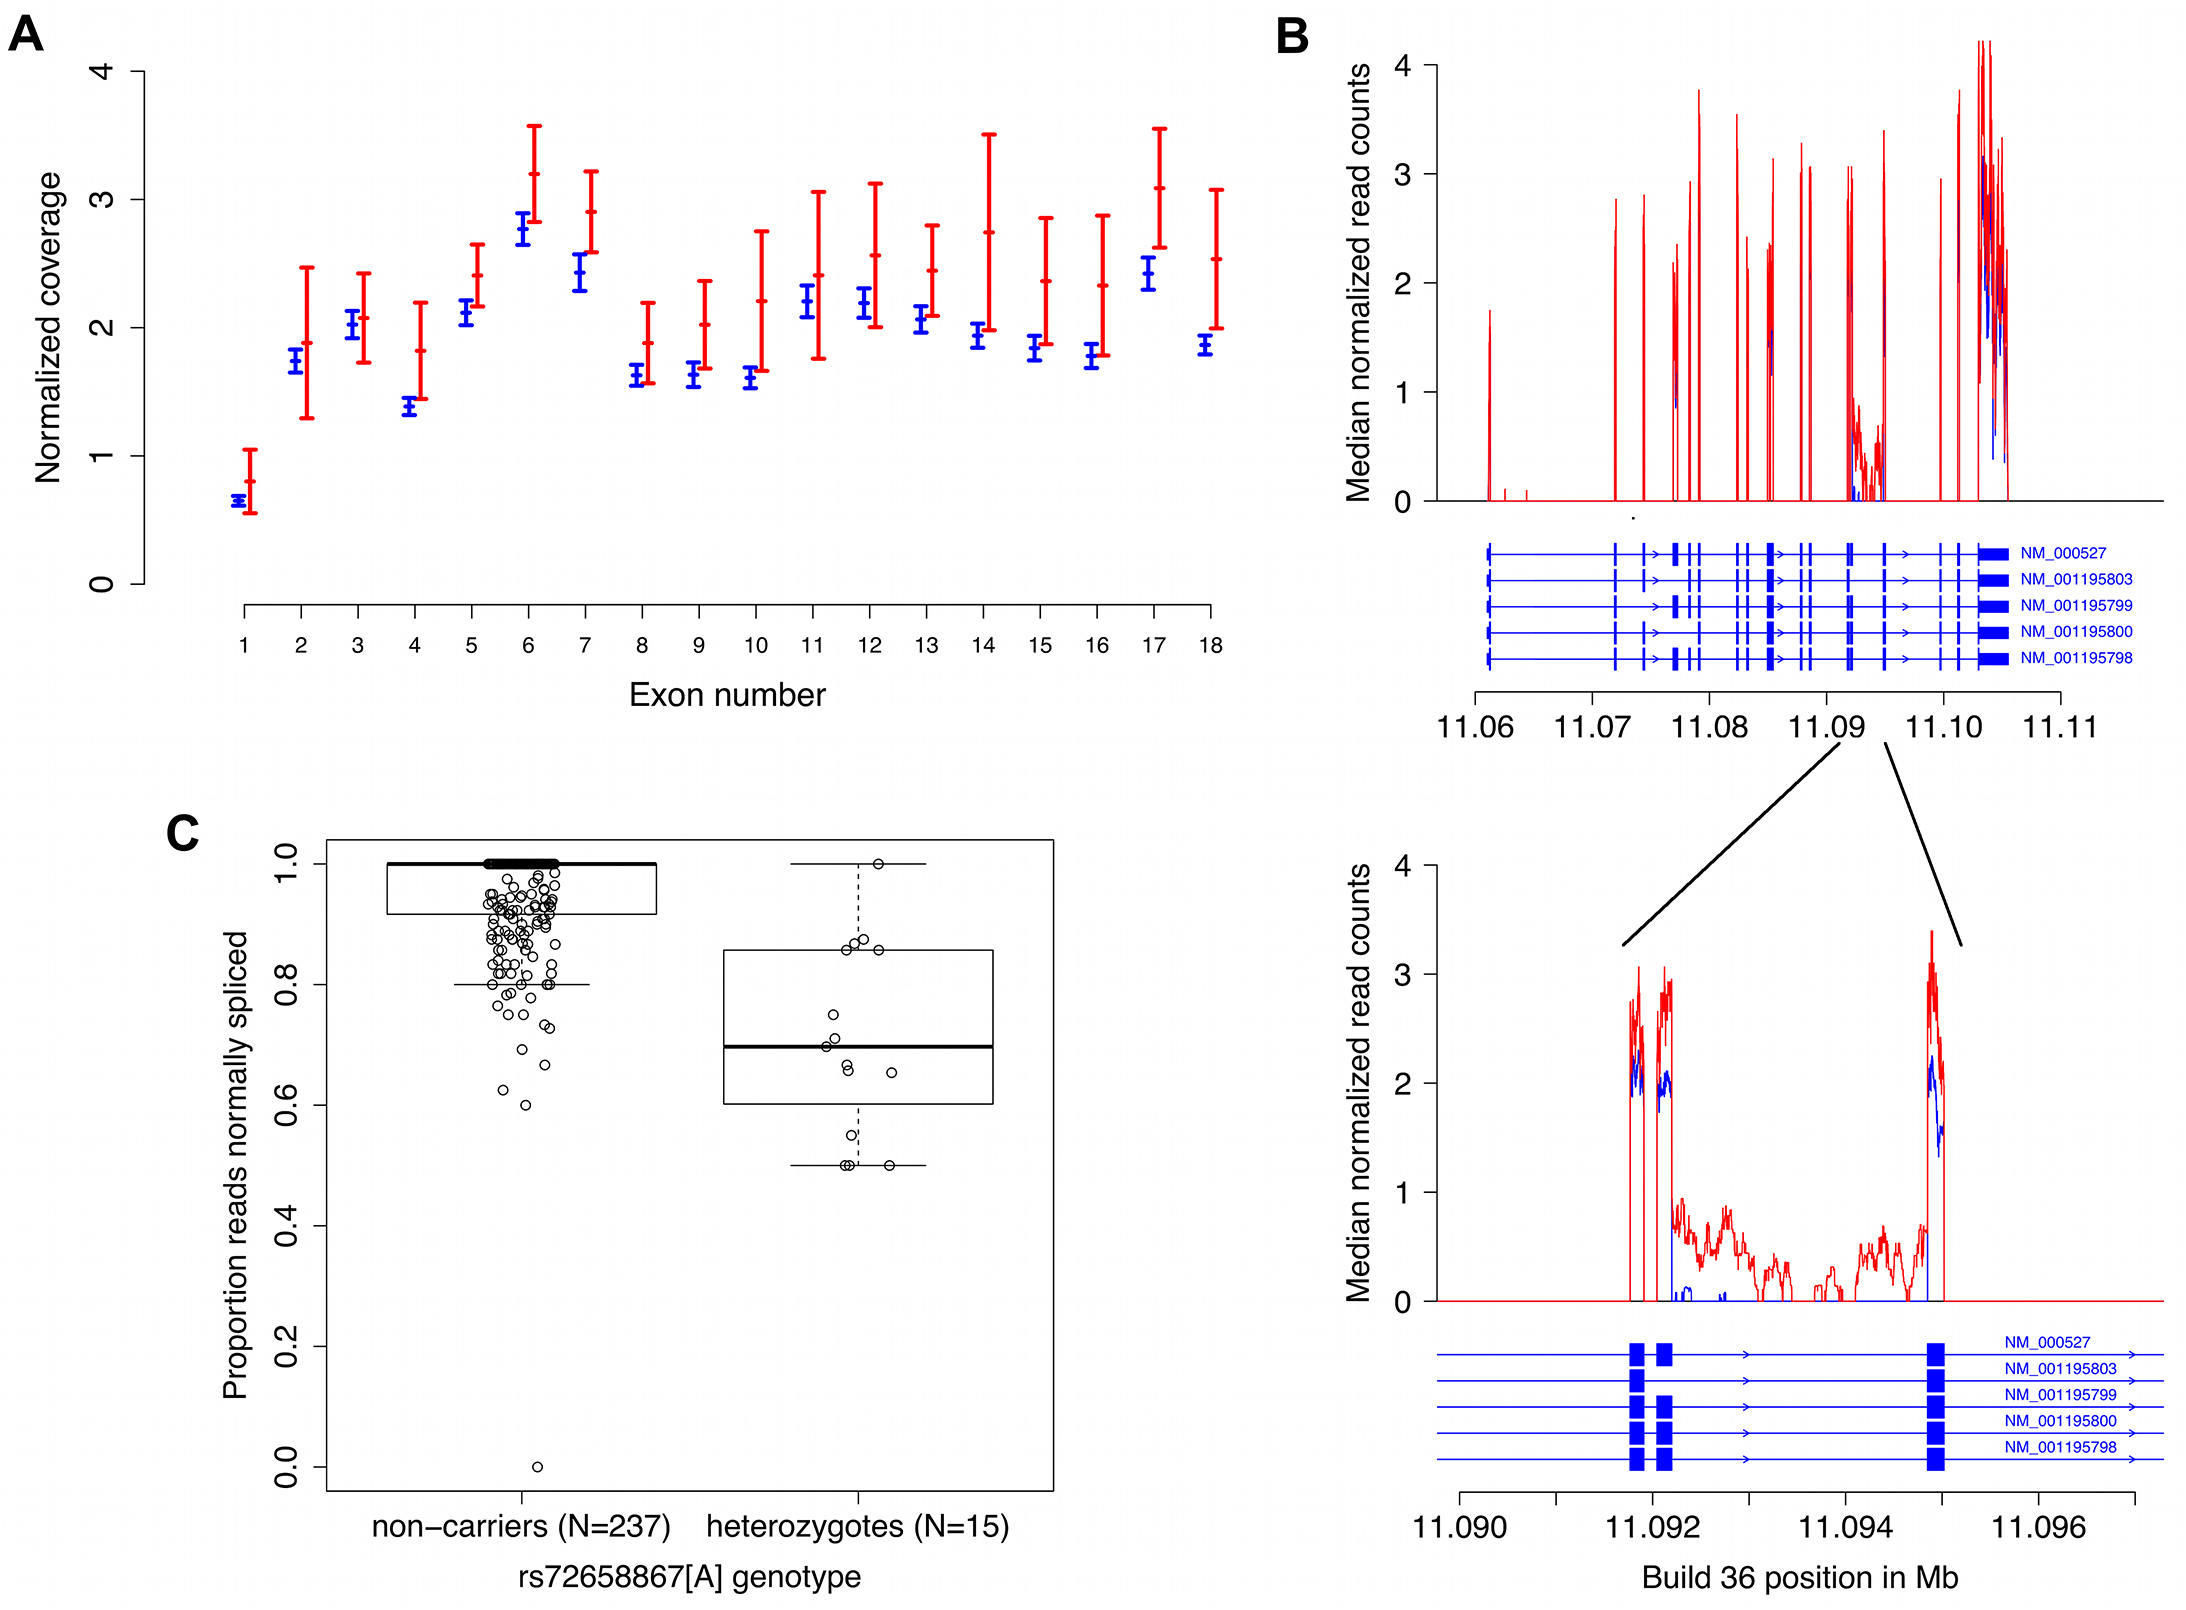 RNA sequencing data from blood demonstrates increased expression and abnormal splicing characterized by intron 14 retention in carriers of the splice region variant rs72658867-A.